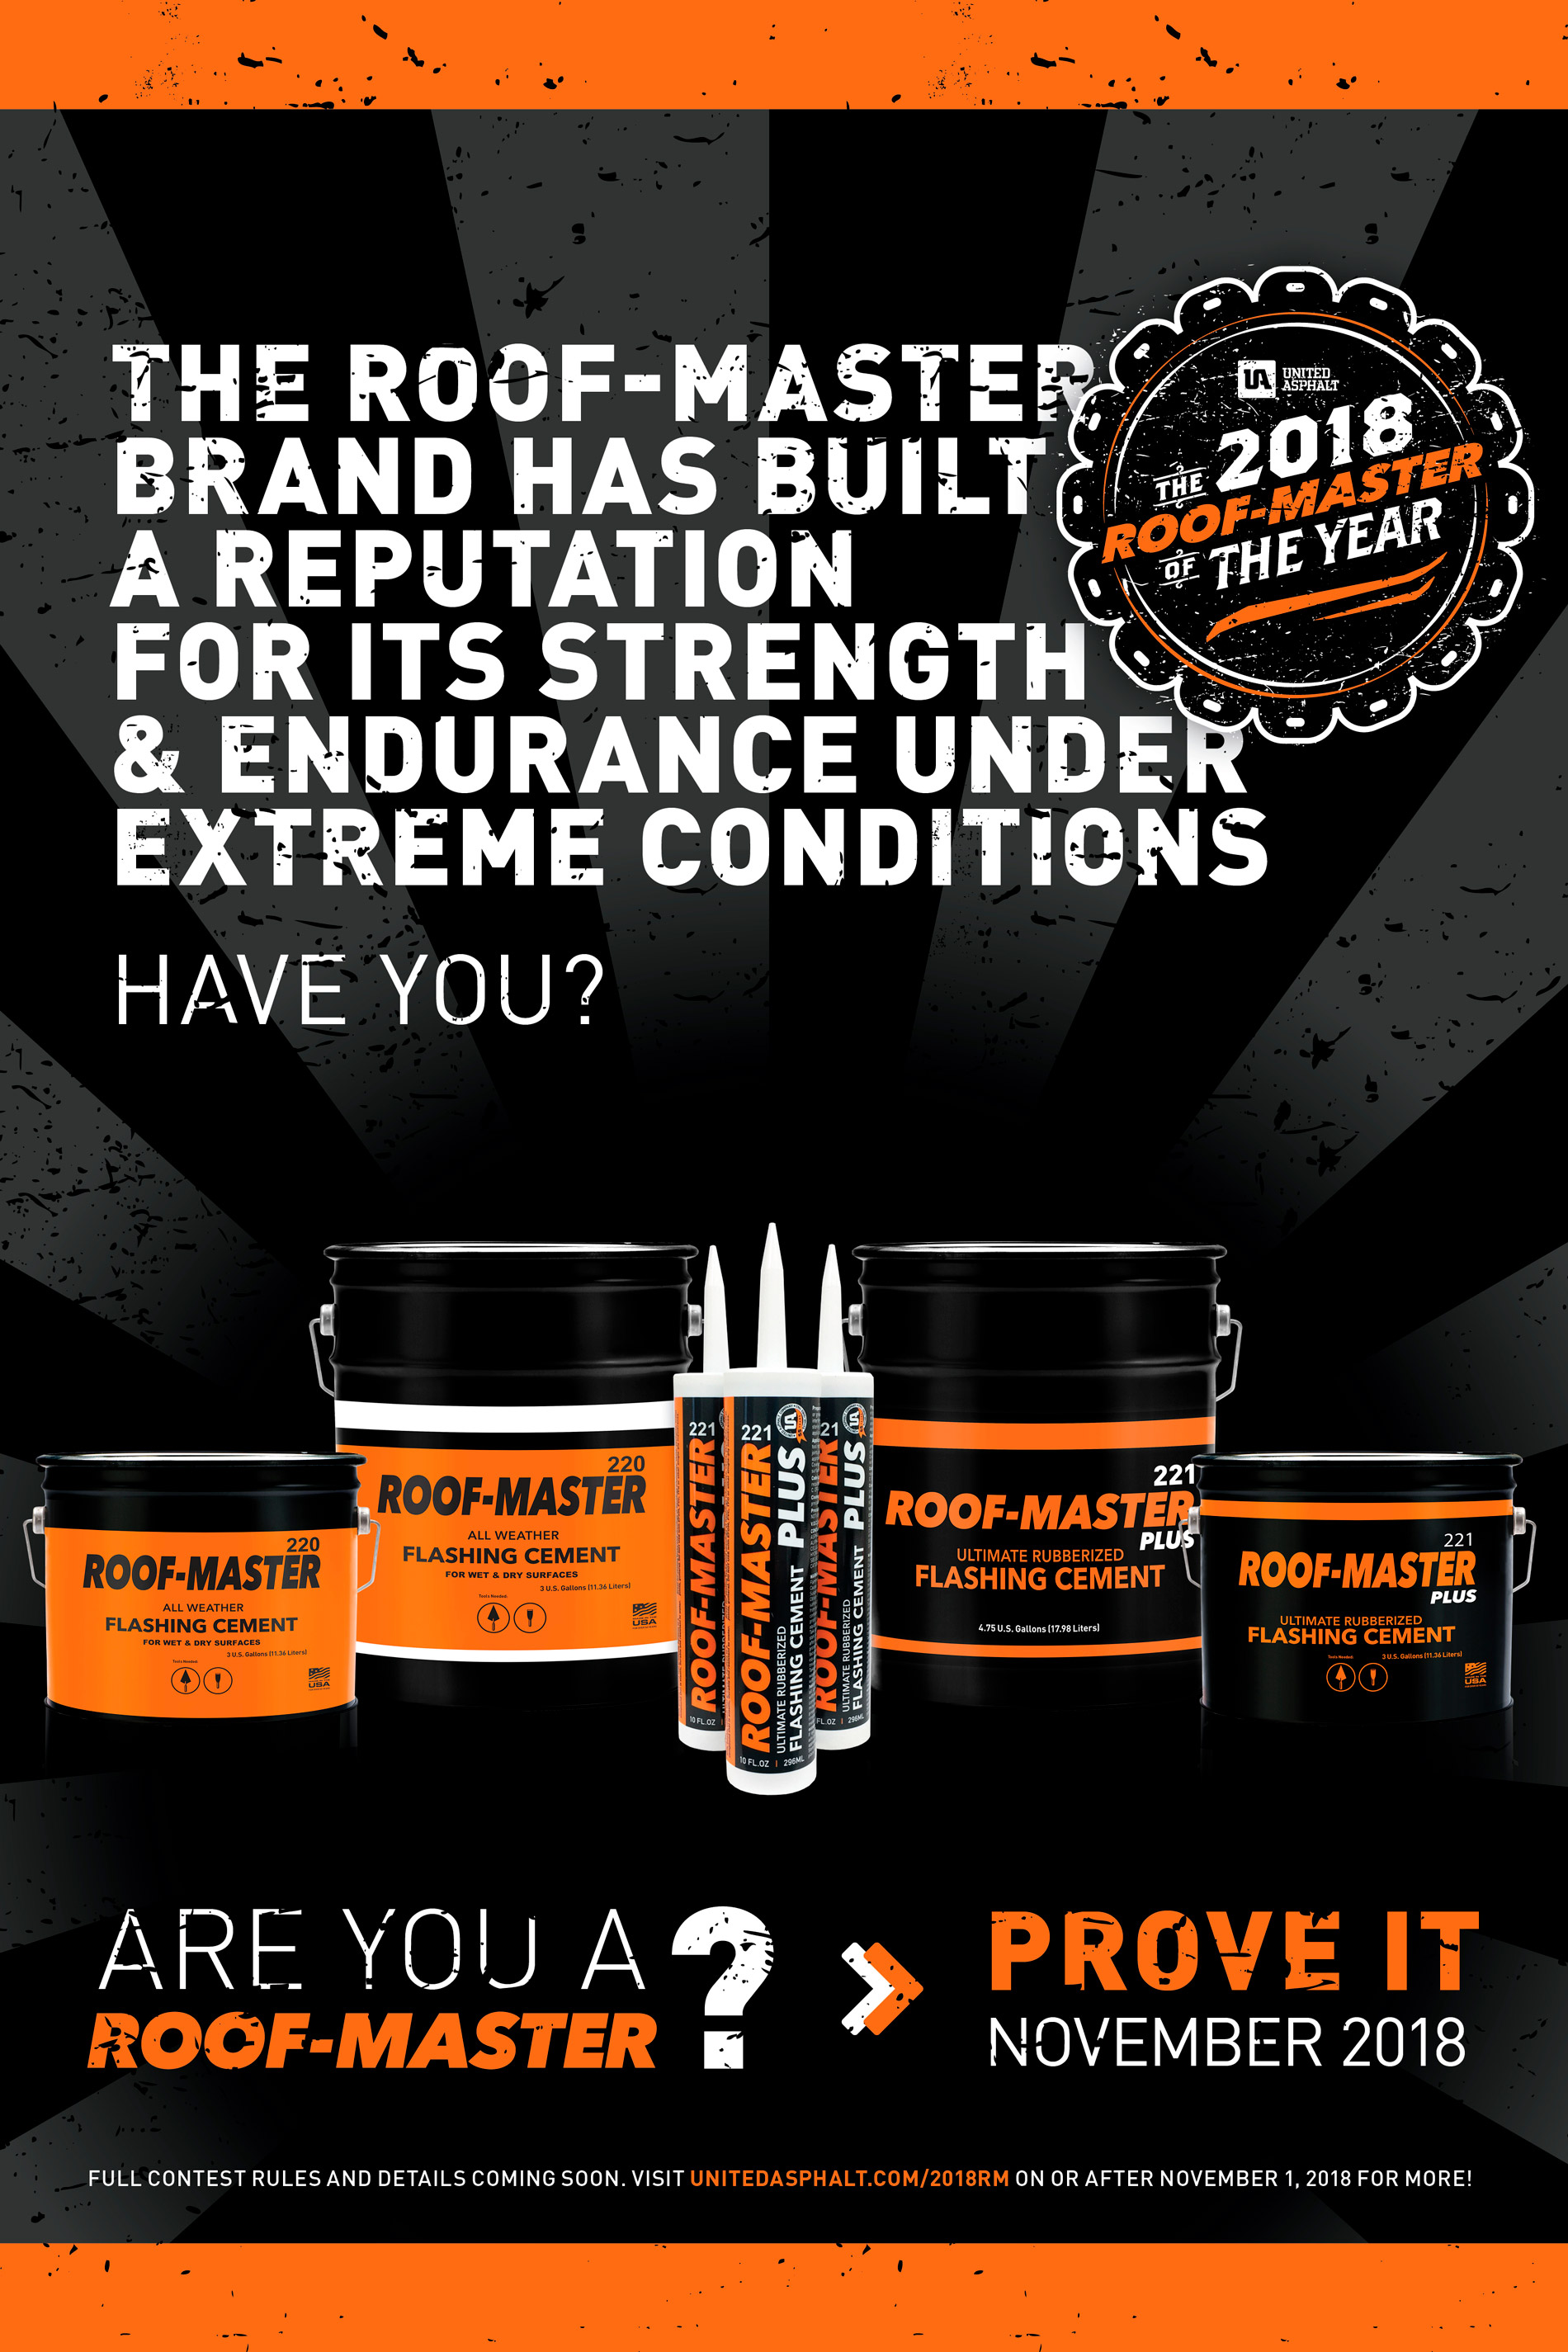 2018 Roof-Master of the Year Contest Landing Page Teaser